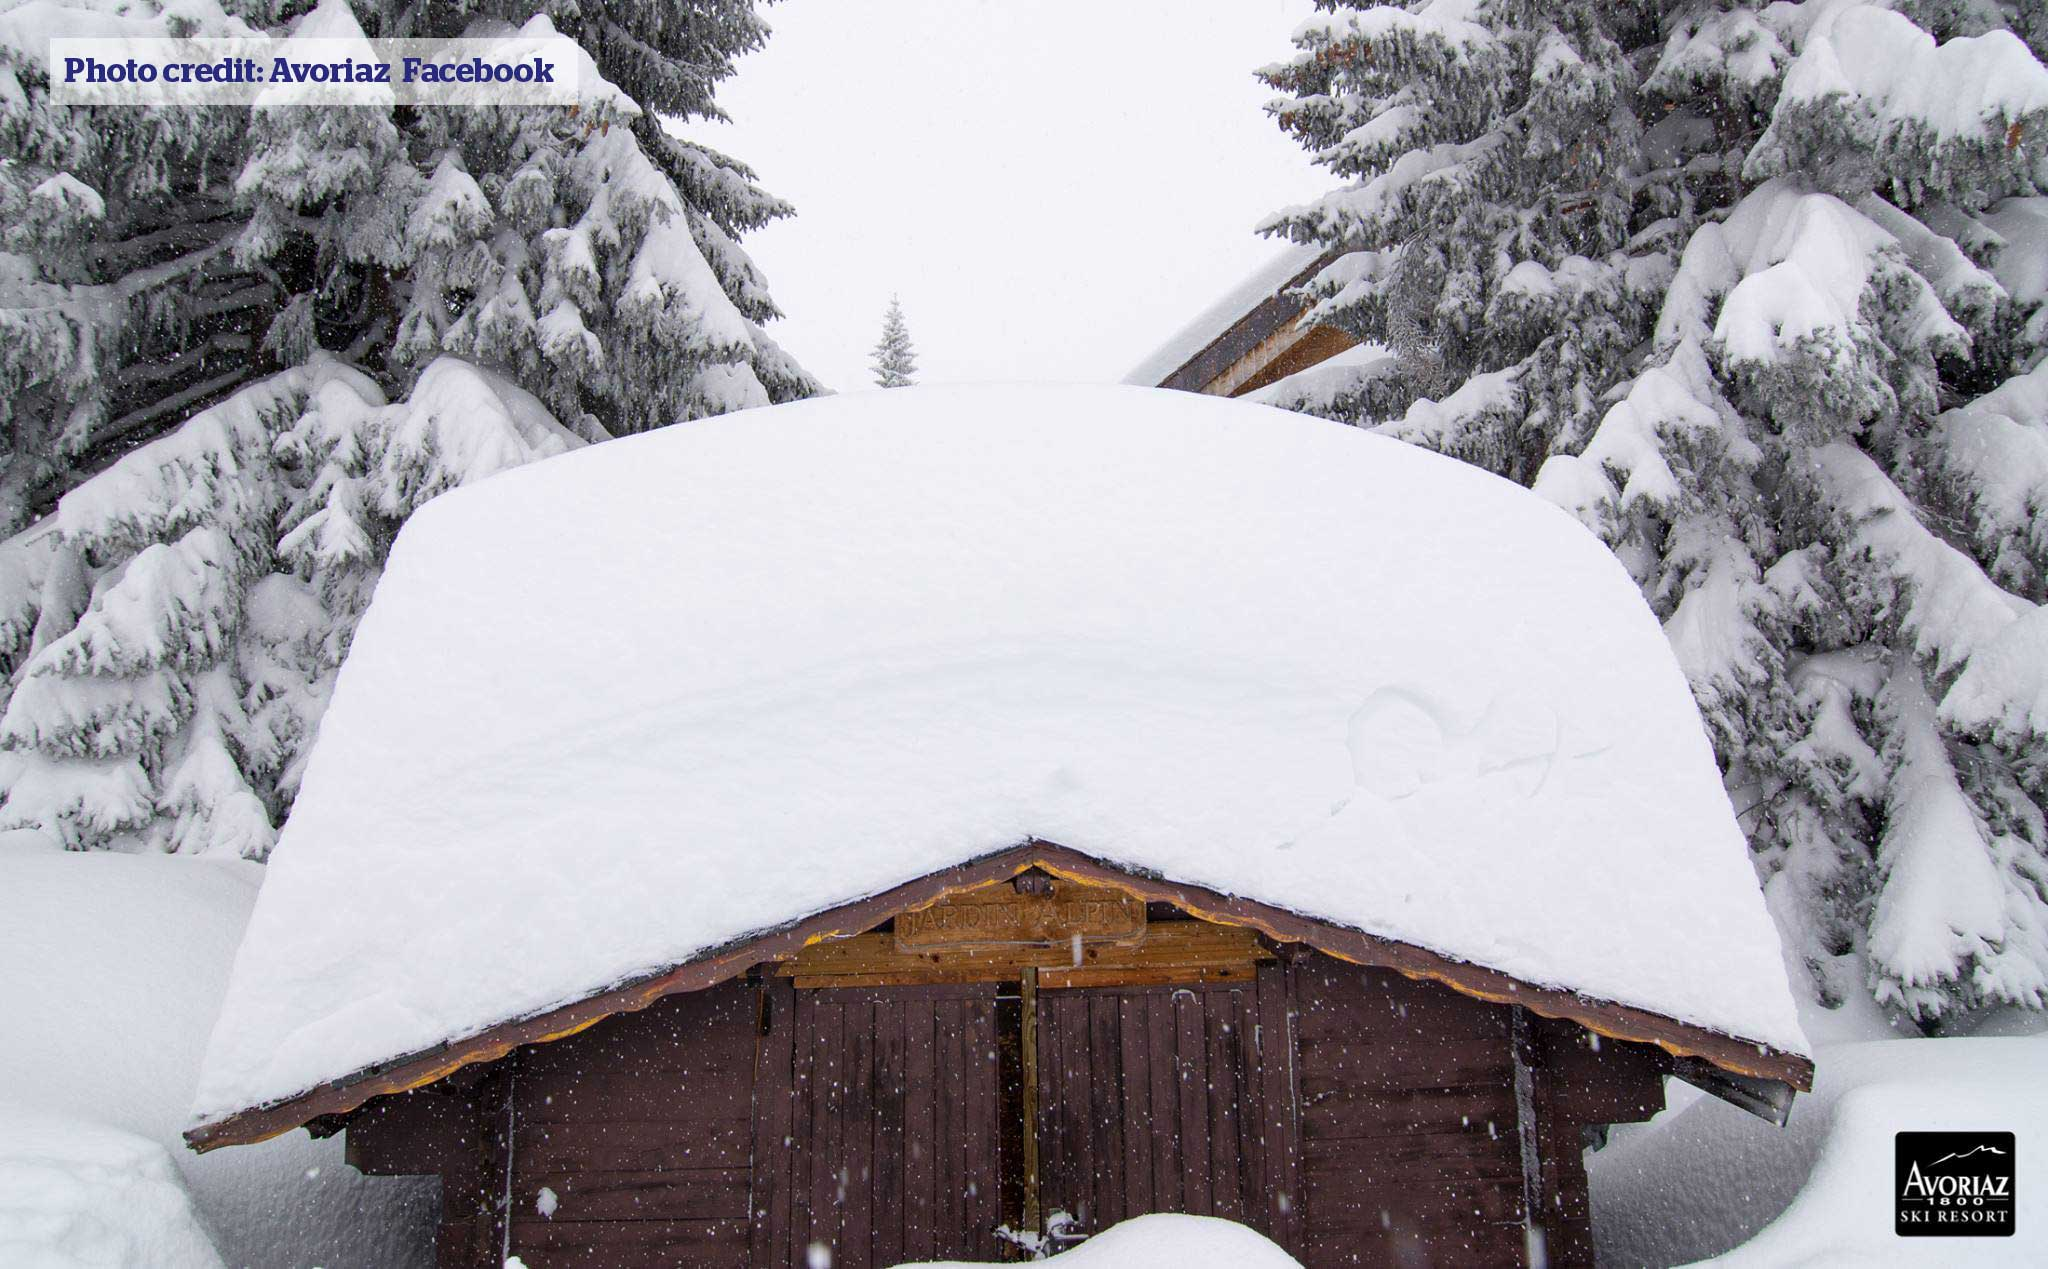 Snowy roof in Avoriaz